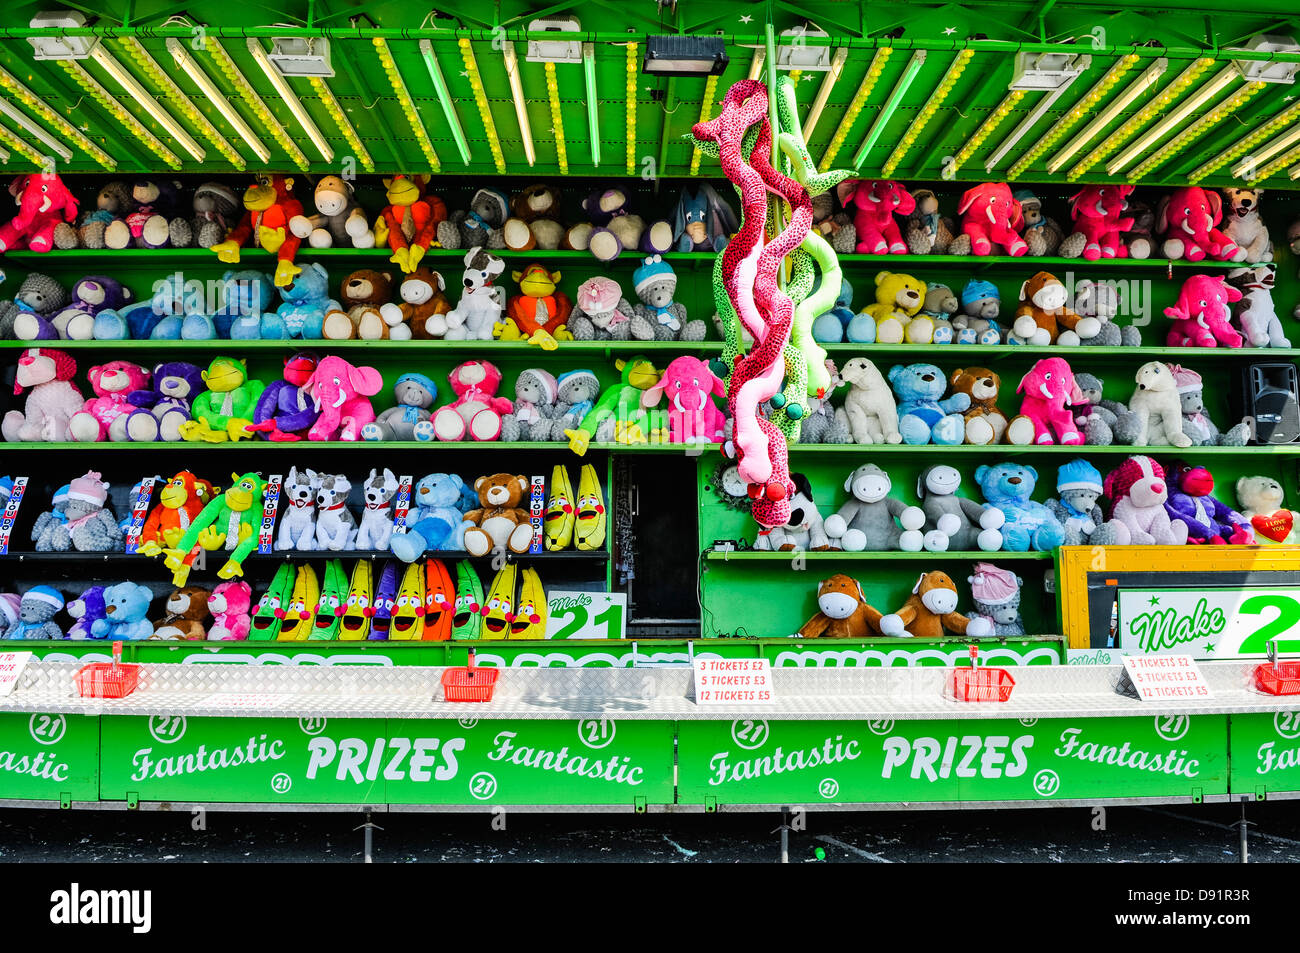 'Blackjack' fairground stall offering cuddly toys as prizes for having tickets totalling 21. - Stock Image